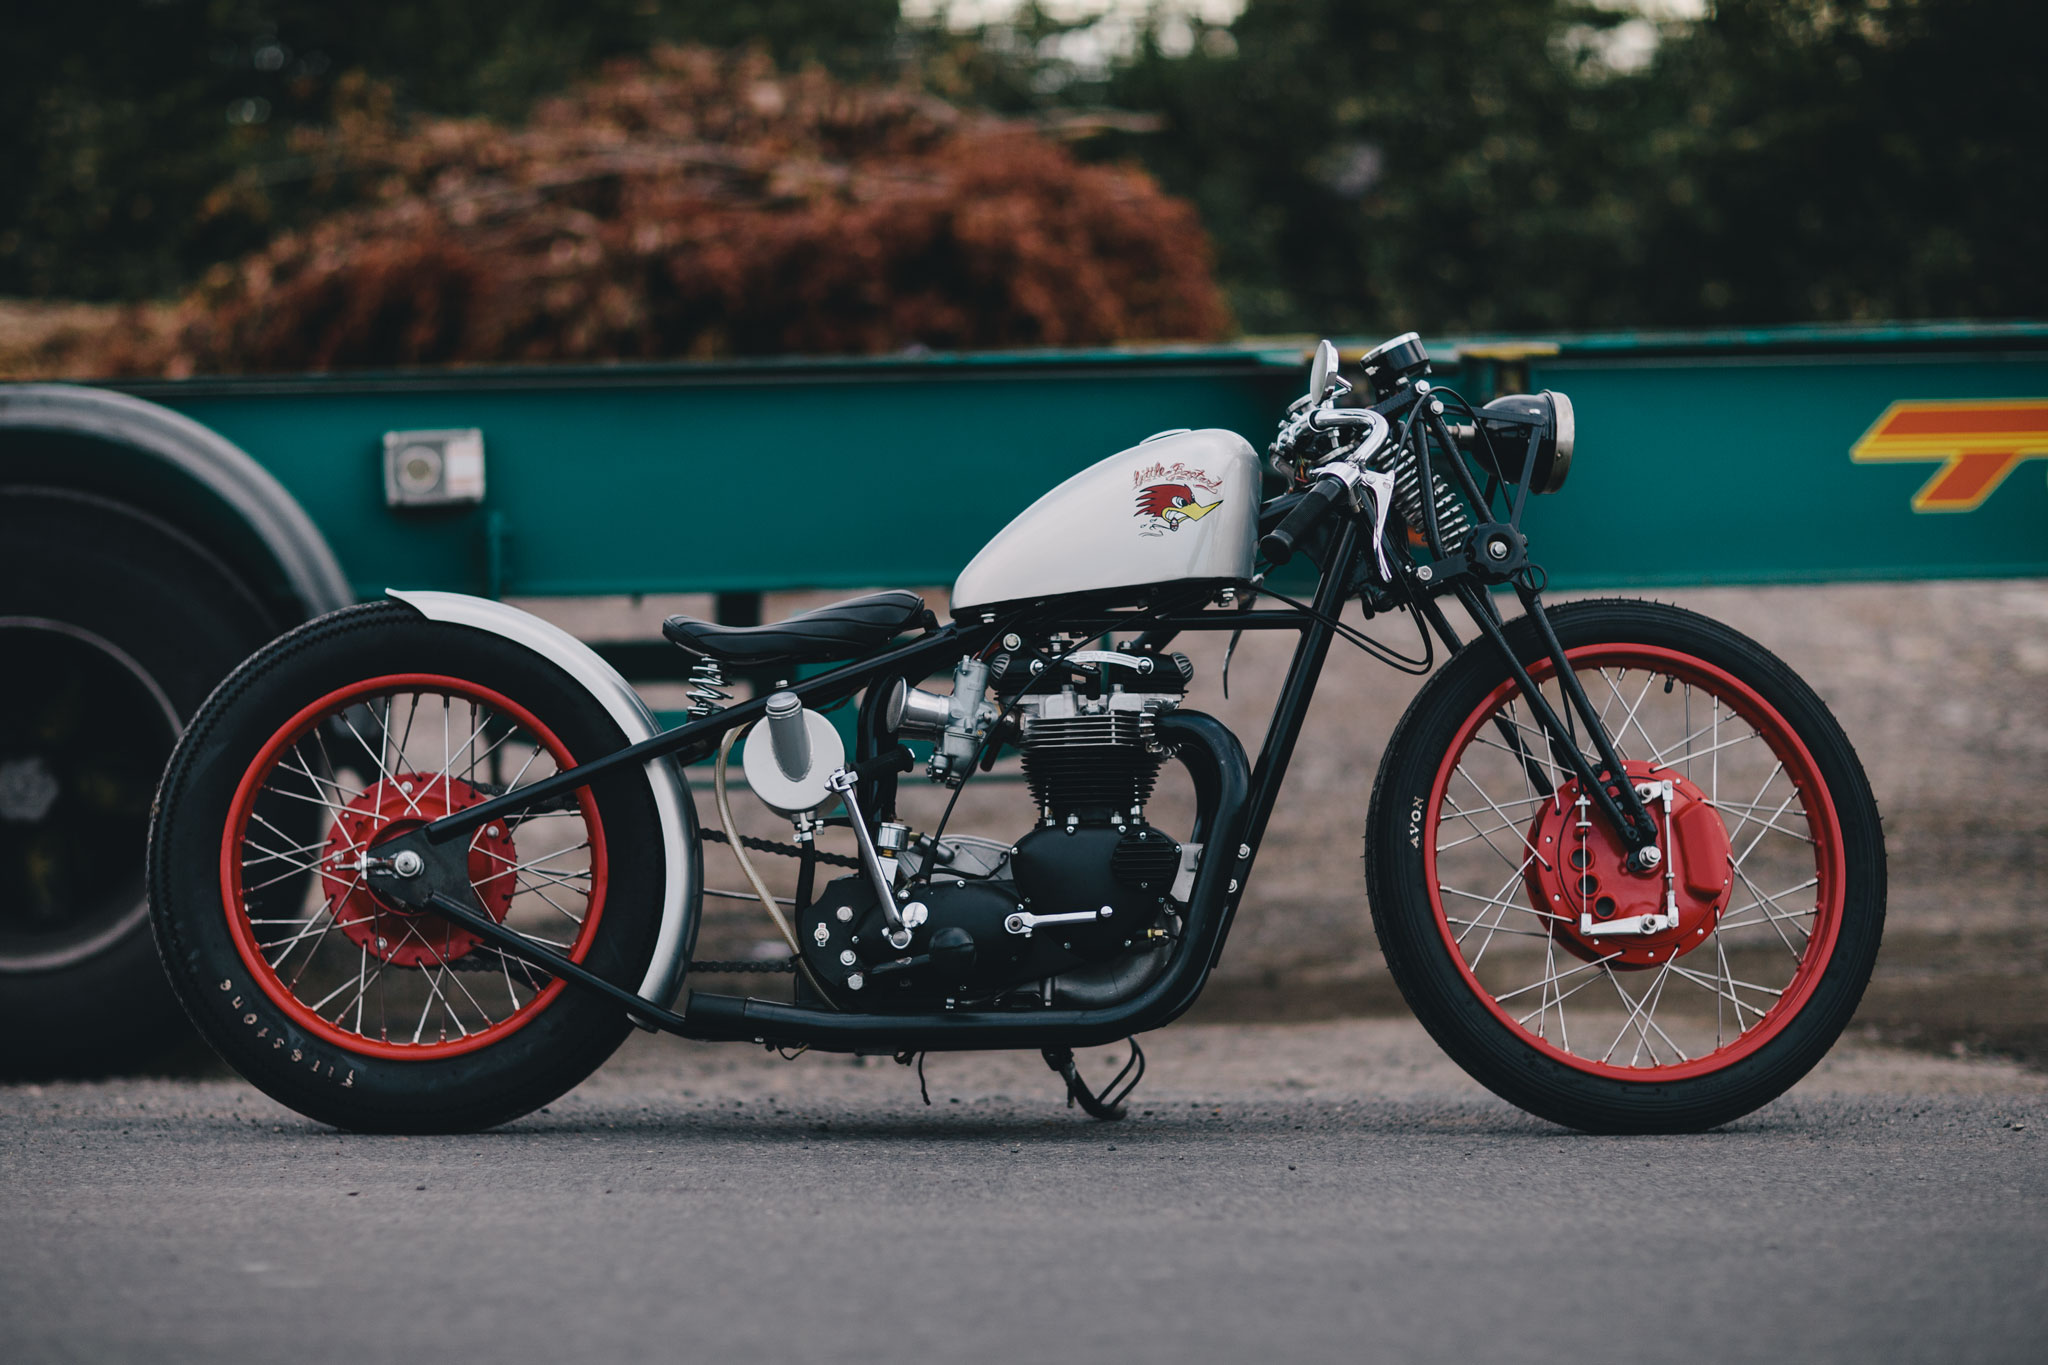 triumph_bobber_hard_tail-26